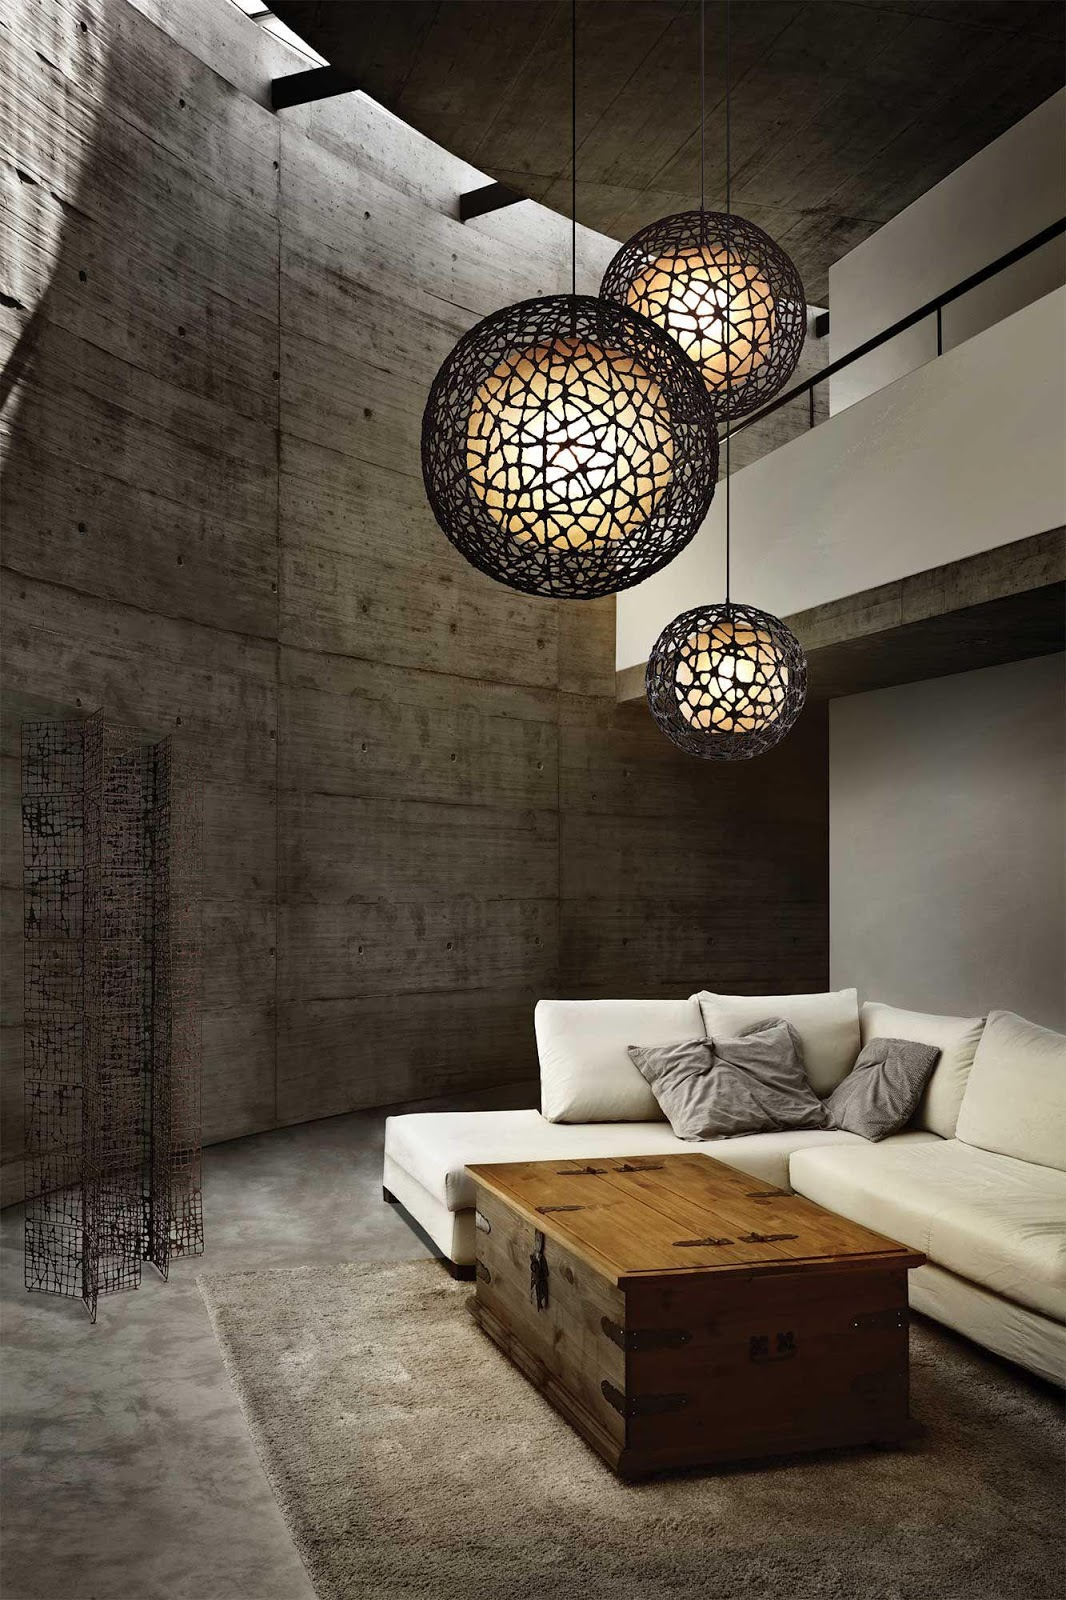 Best 15 Hanging Lights Ideas For Every Corner Of Your House